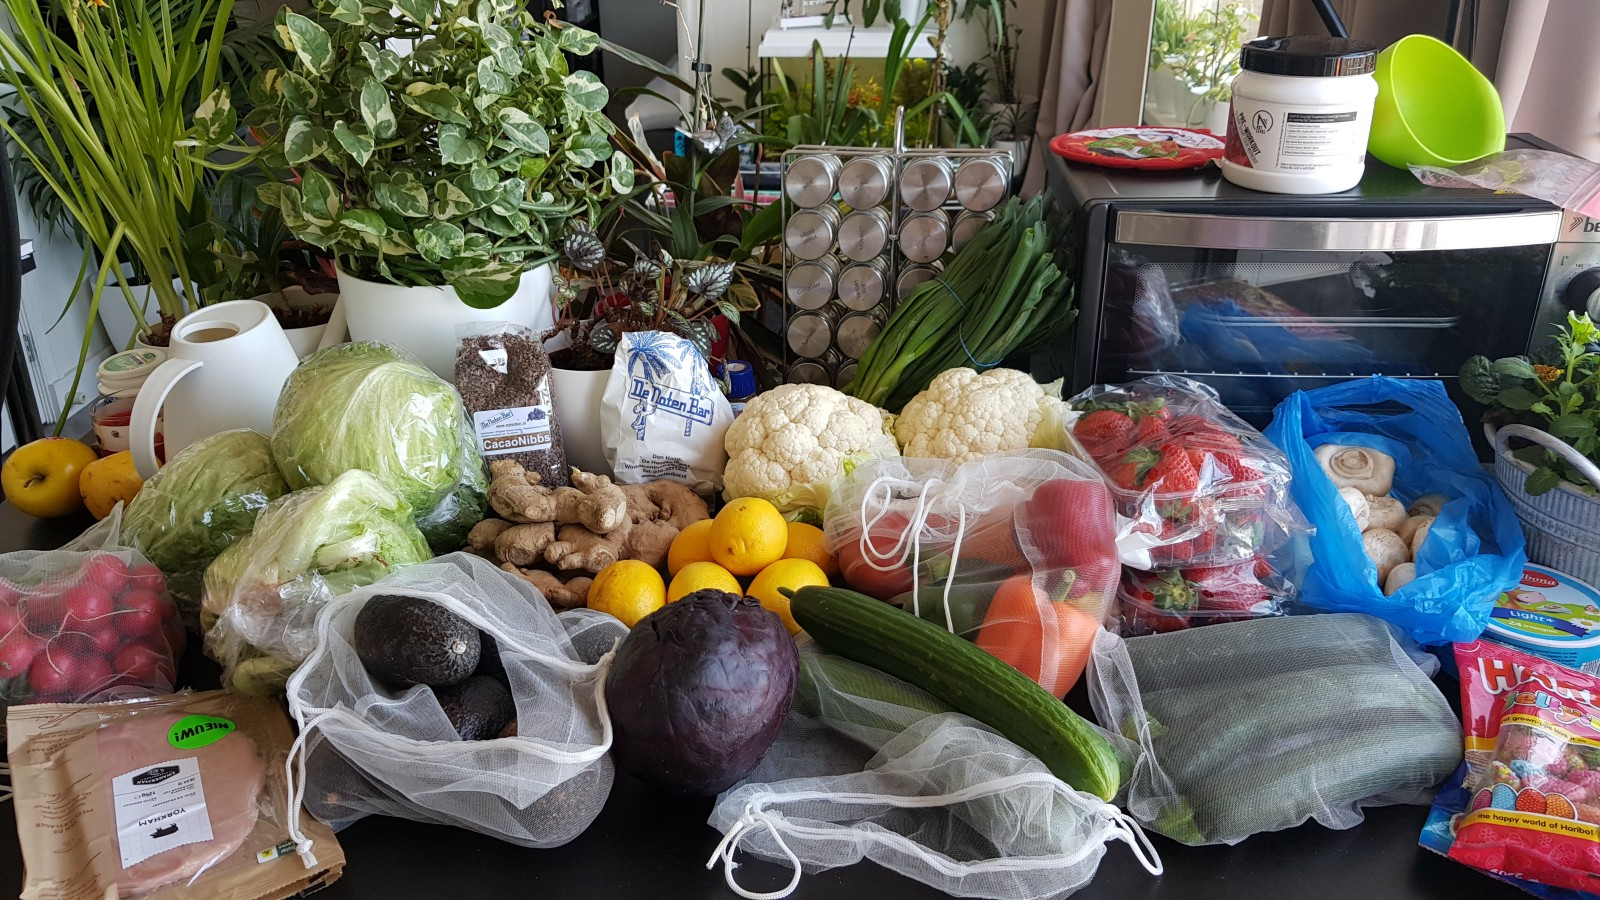 The market haul! – Kinga's table – Medium